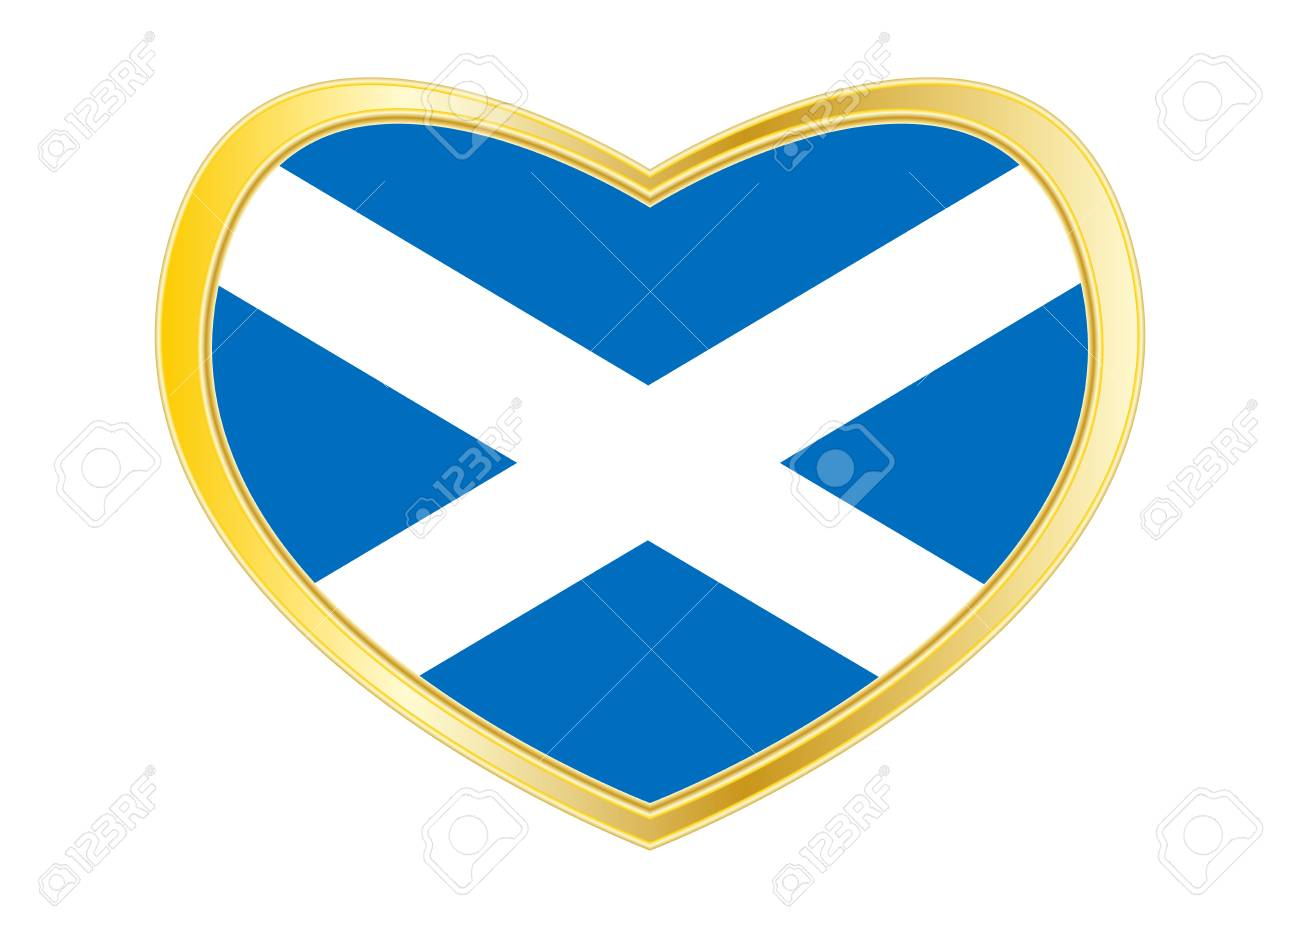 Patriotic symbols clip art image collections symbol and sign ideas scottish national official flag patriotic symbol banner element scottish national official flag patriotic symbol banner element biocorpaavc Choice Image